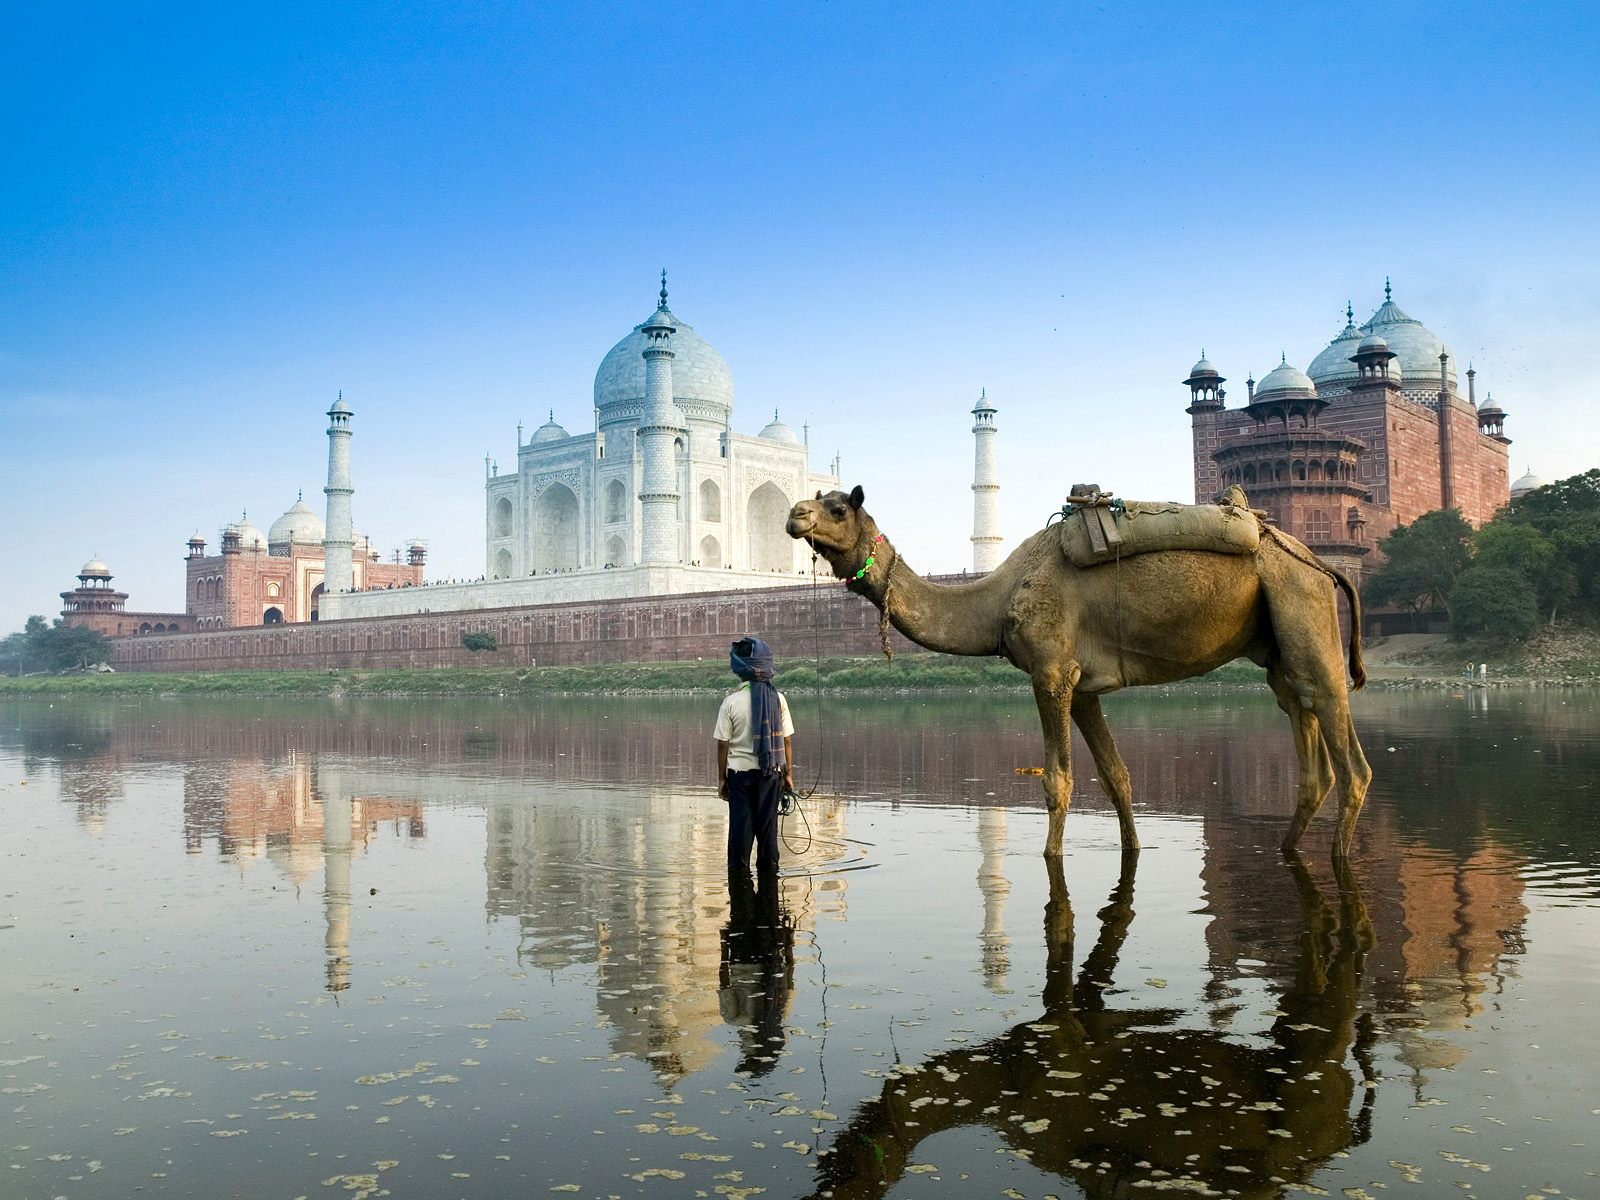 Agra – A Timeless Old City Still Clinging To Its Glorious Past